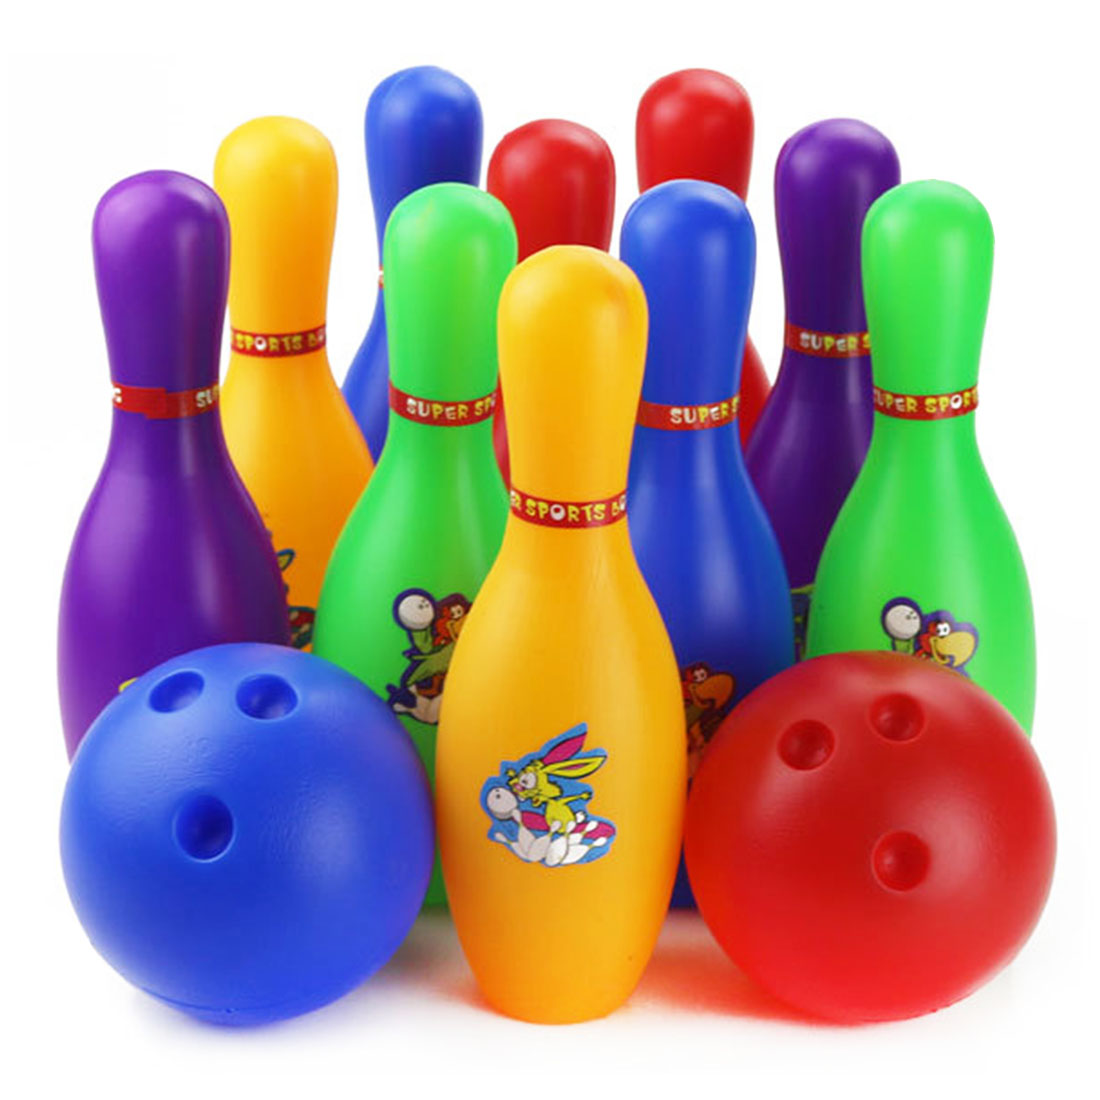 Colorful Standard 12 Piece Bowling Set w/ 10 Pins, 2 Bowling Balls Children Kids Educational Toy Party Fun Family Game (Large) taza de m&m